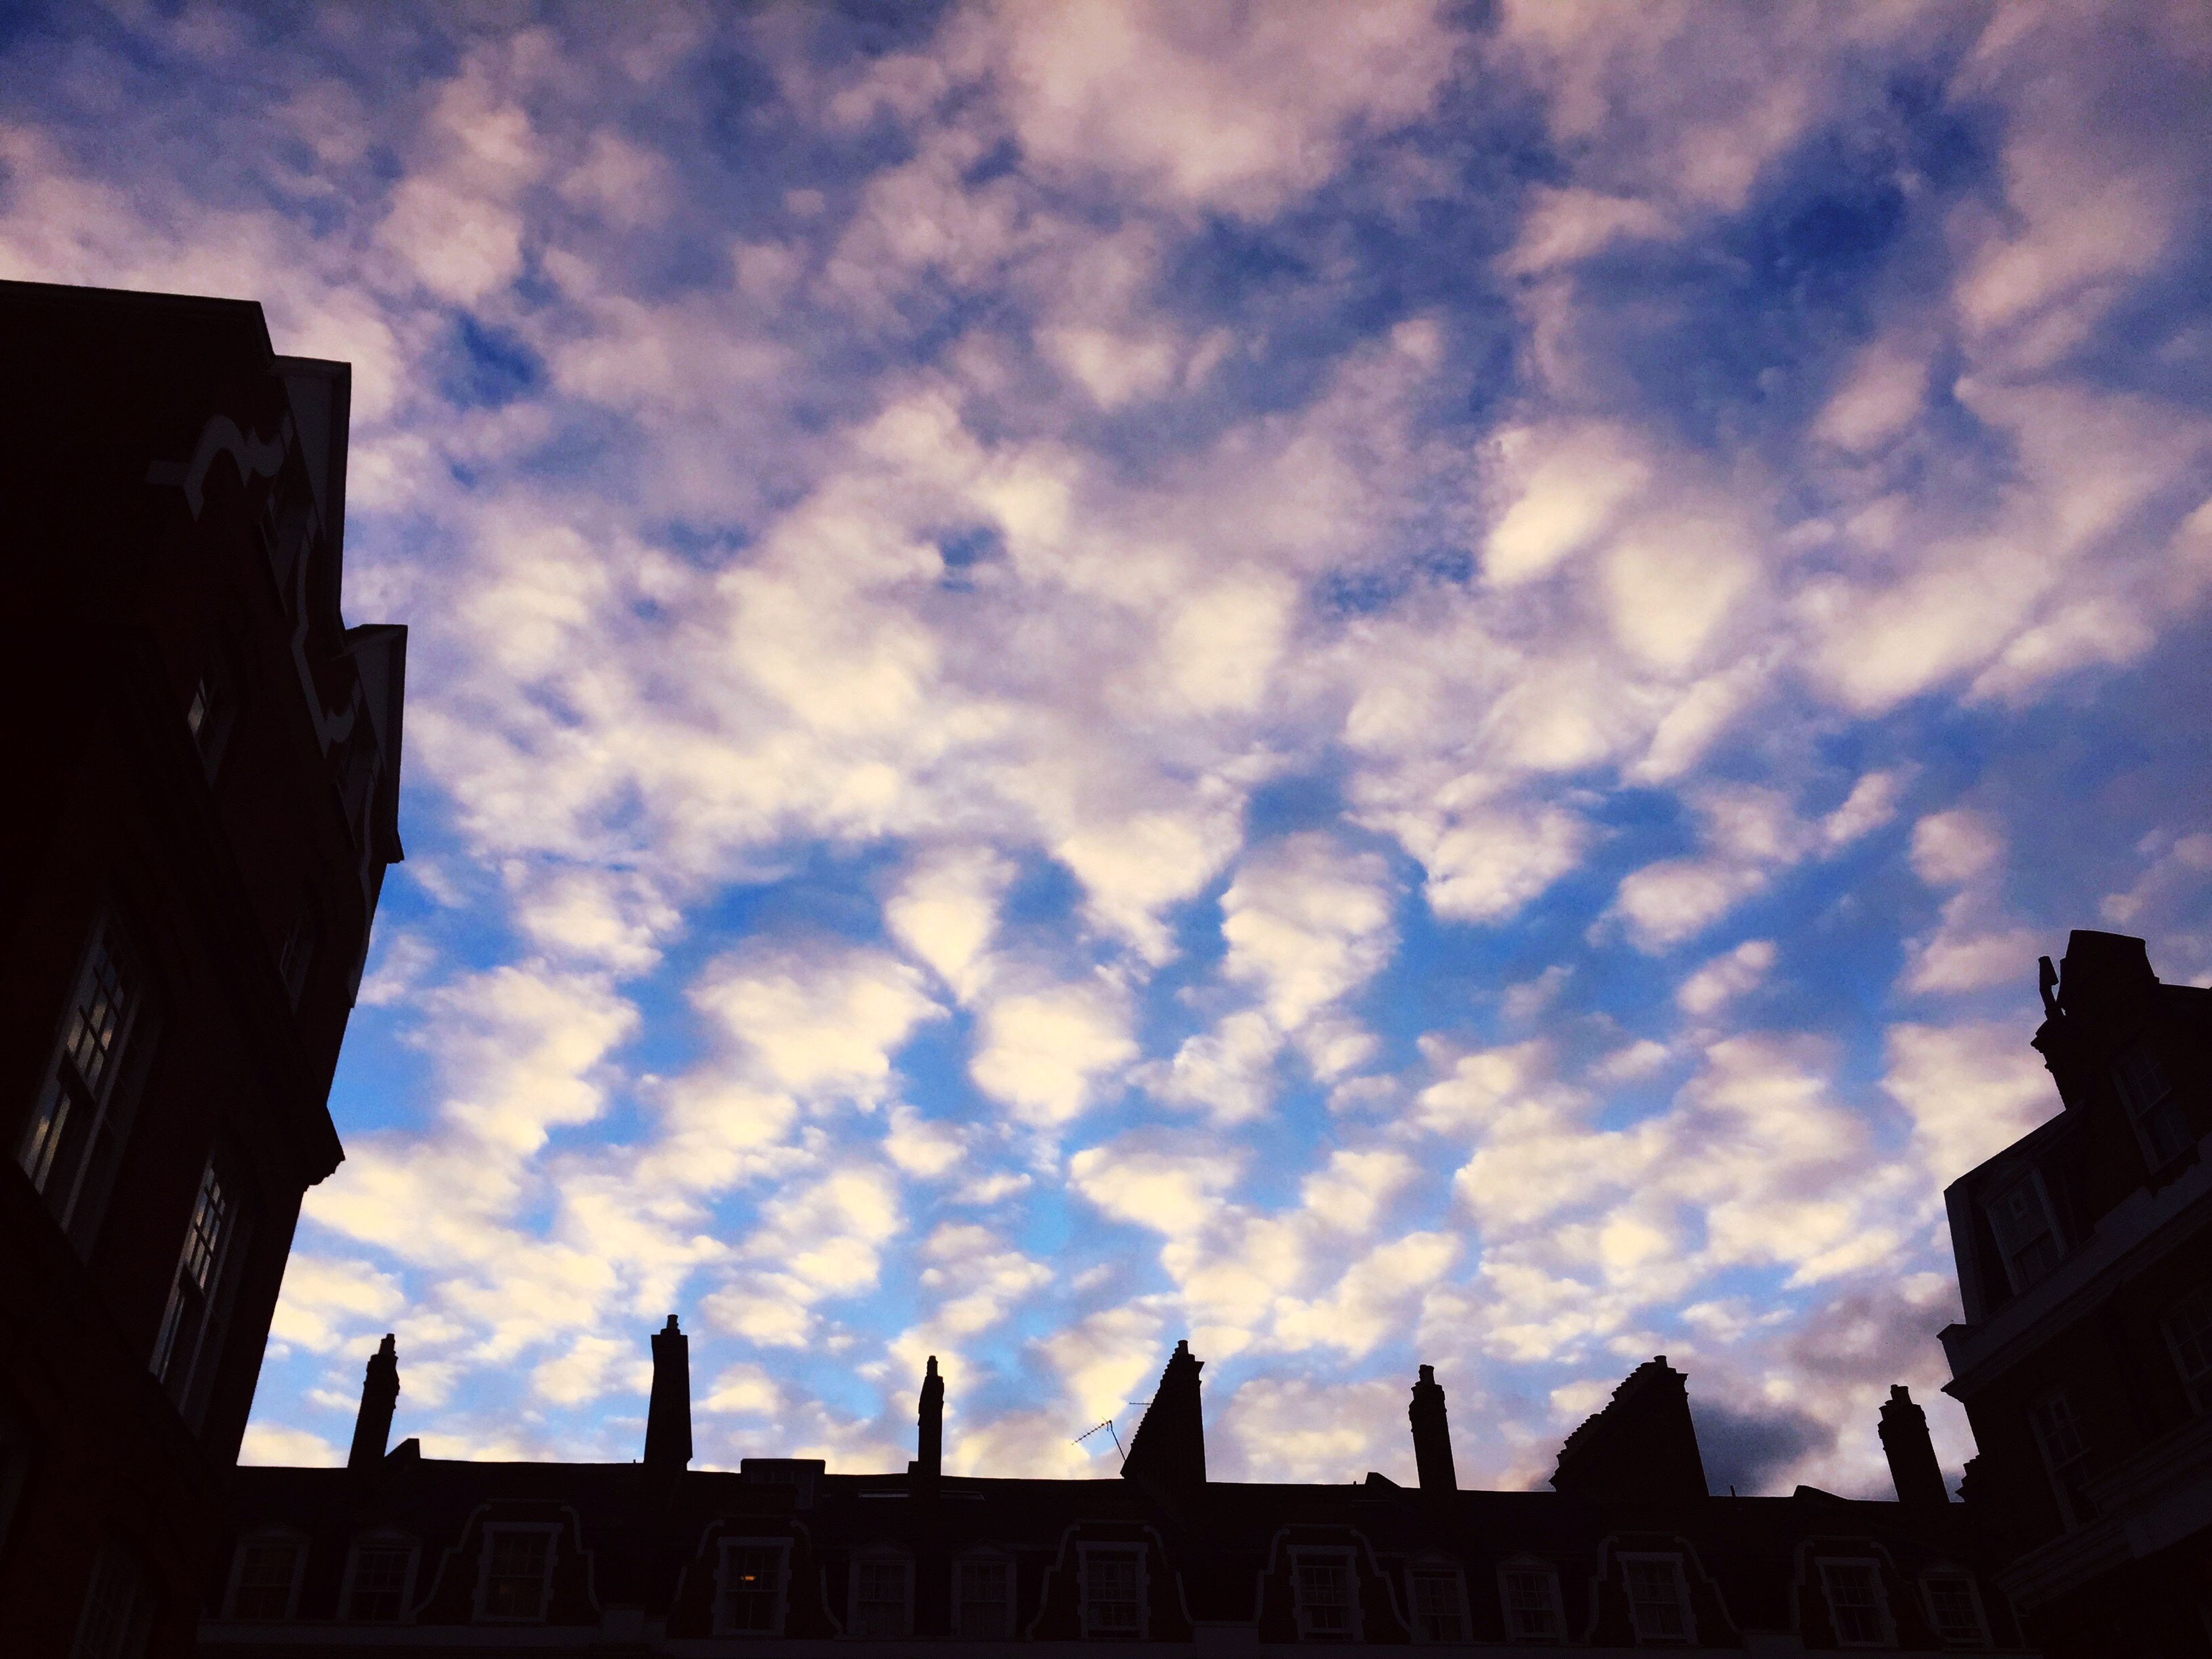 architecture, building exterior, sky, low angle view, built structure, cloud - sky, cloudy, cloud, building, city, silhouette, outdoors, high section, sunset, overcast, residential building, no people, weather, residential structure, dusk